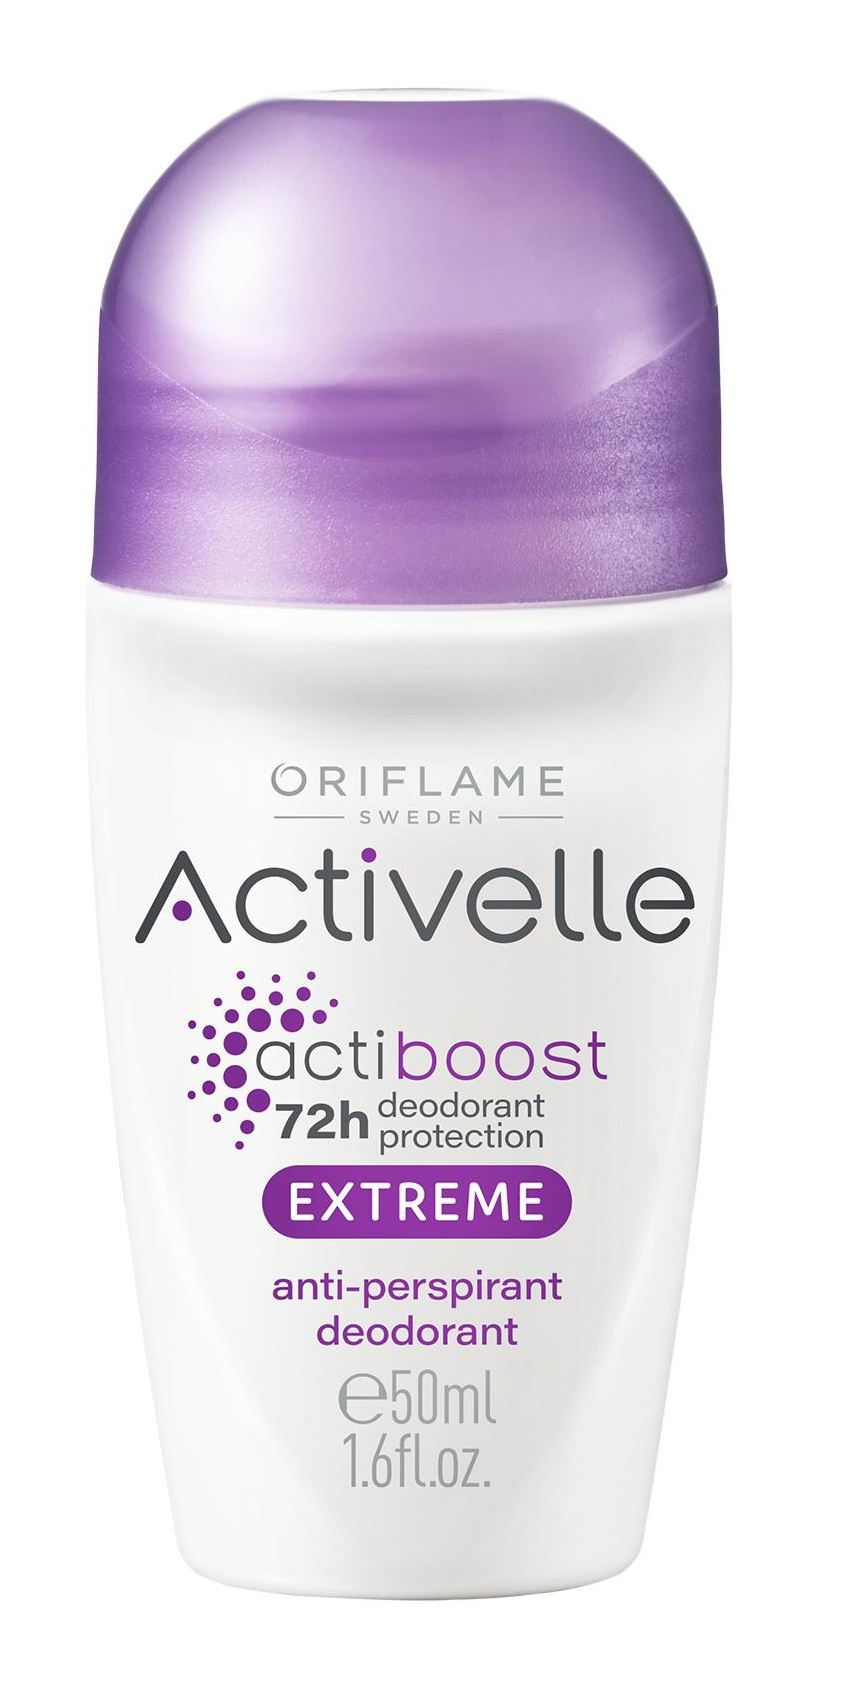 Oriflame Activelle Extreme